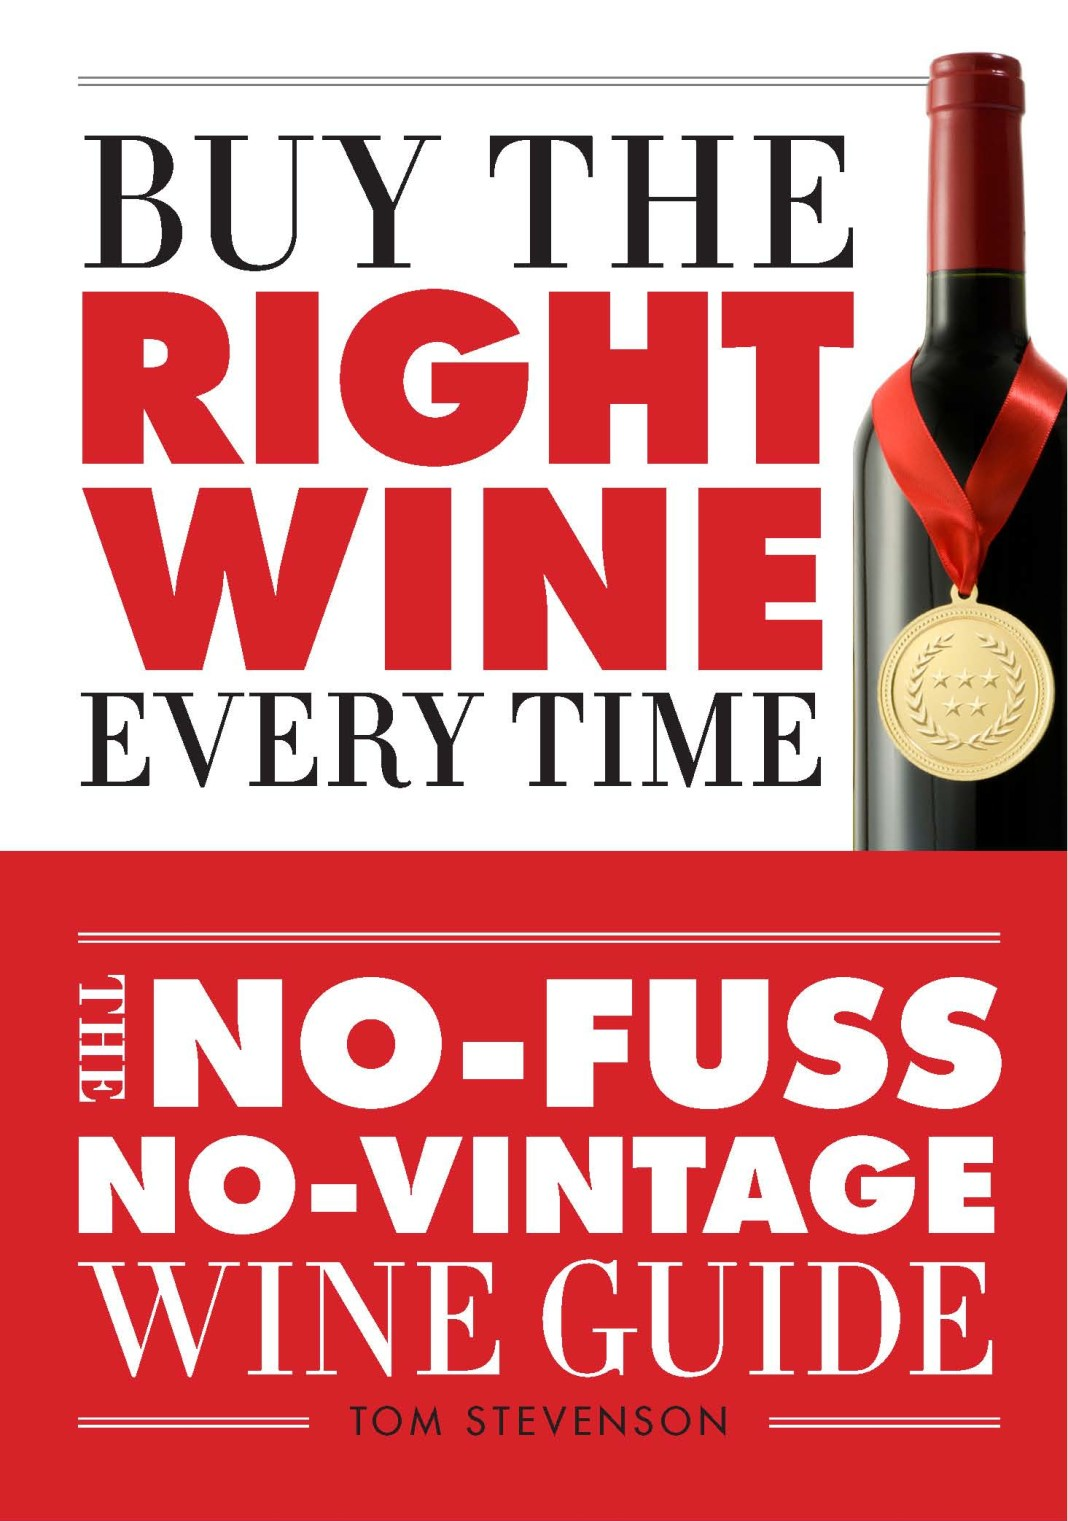 Buy the Right Wine Every Time by Tom Stevenson